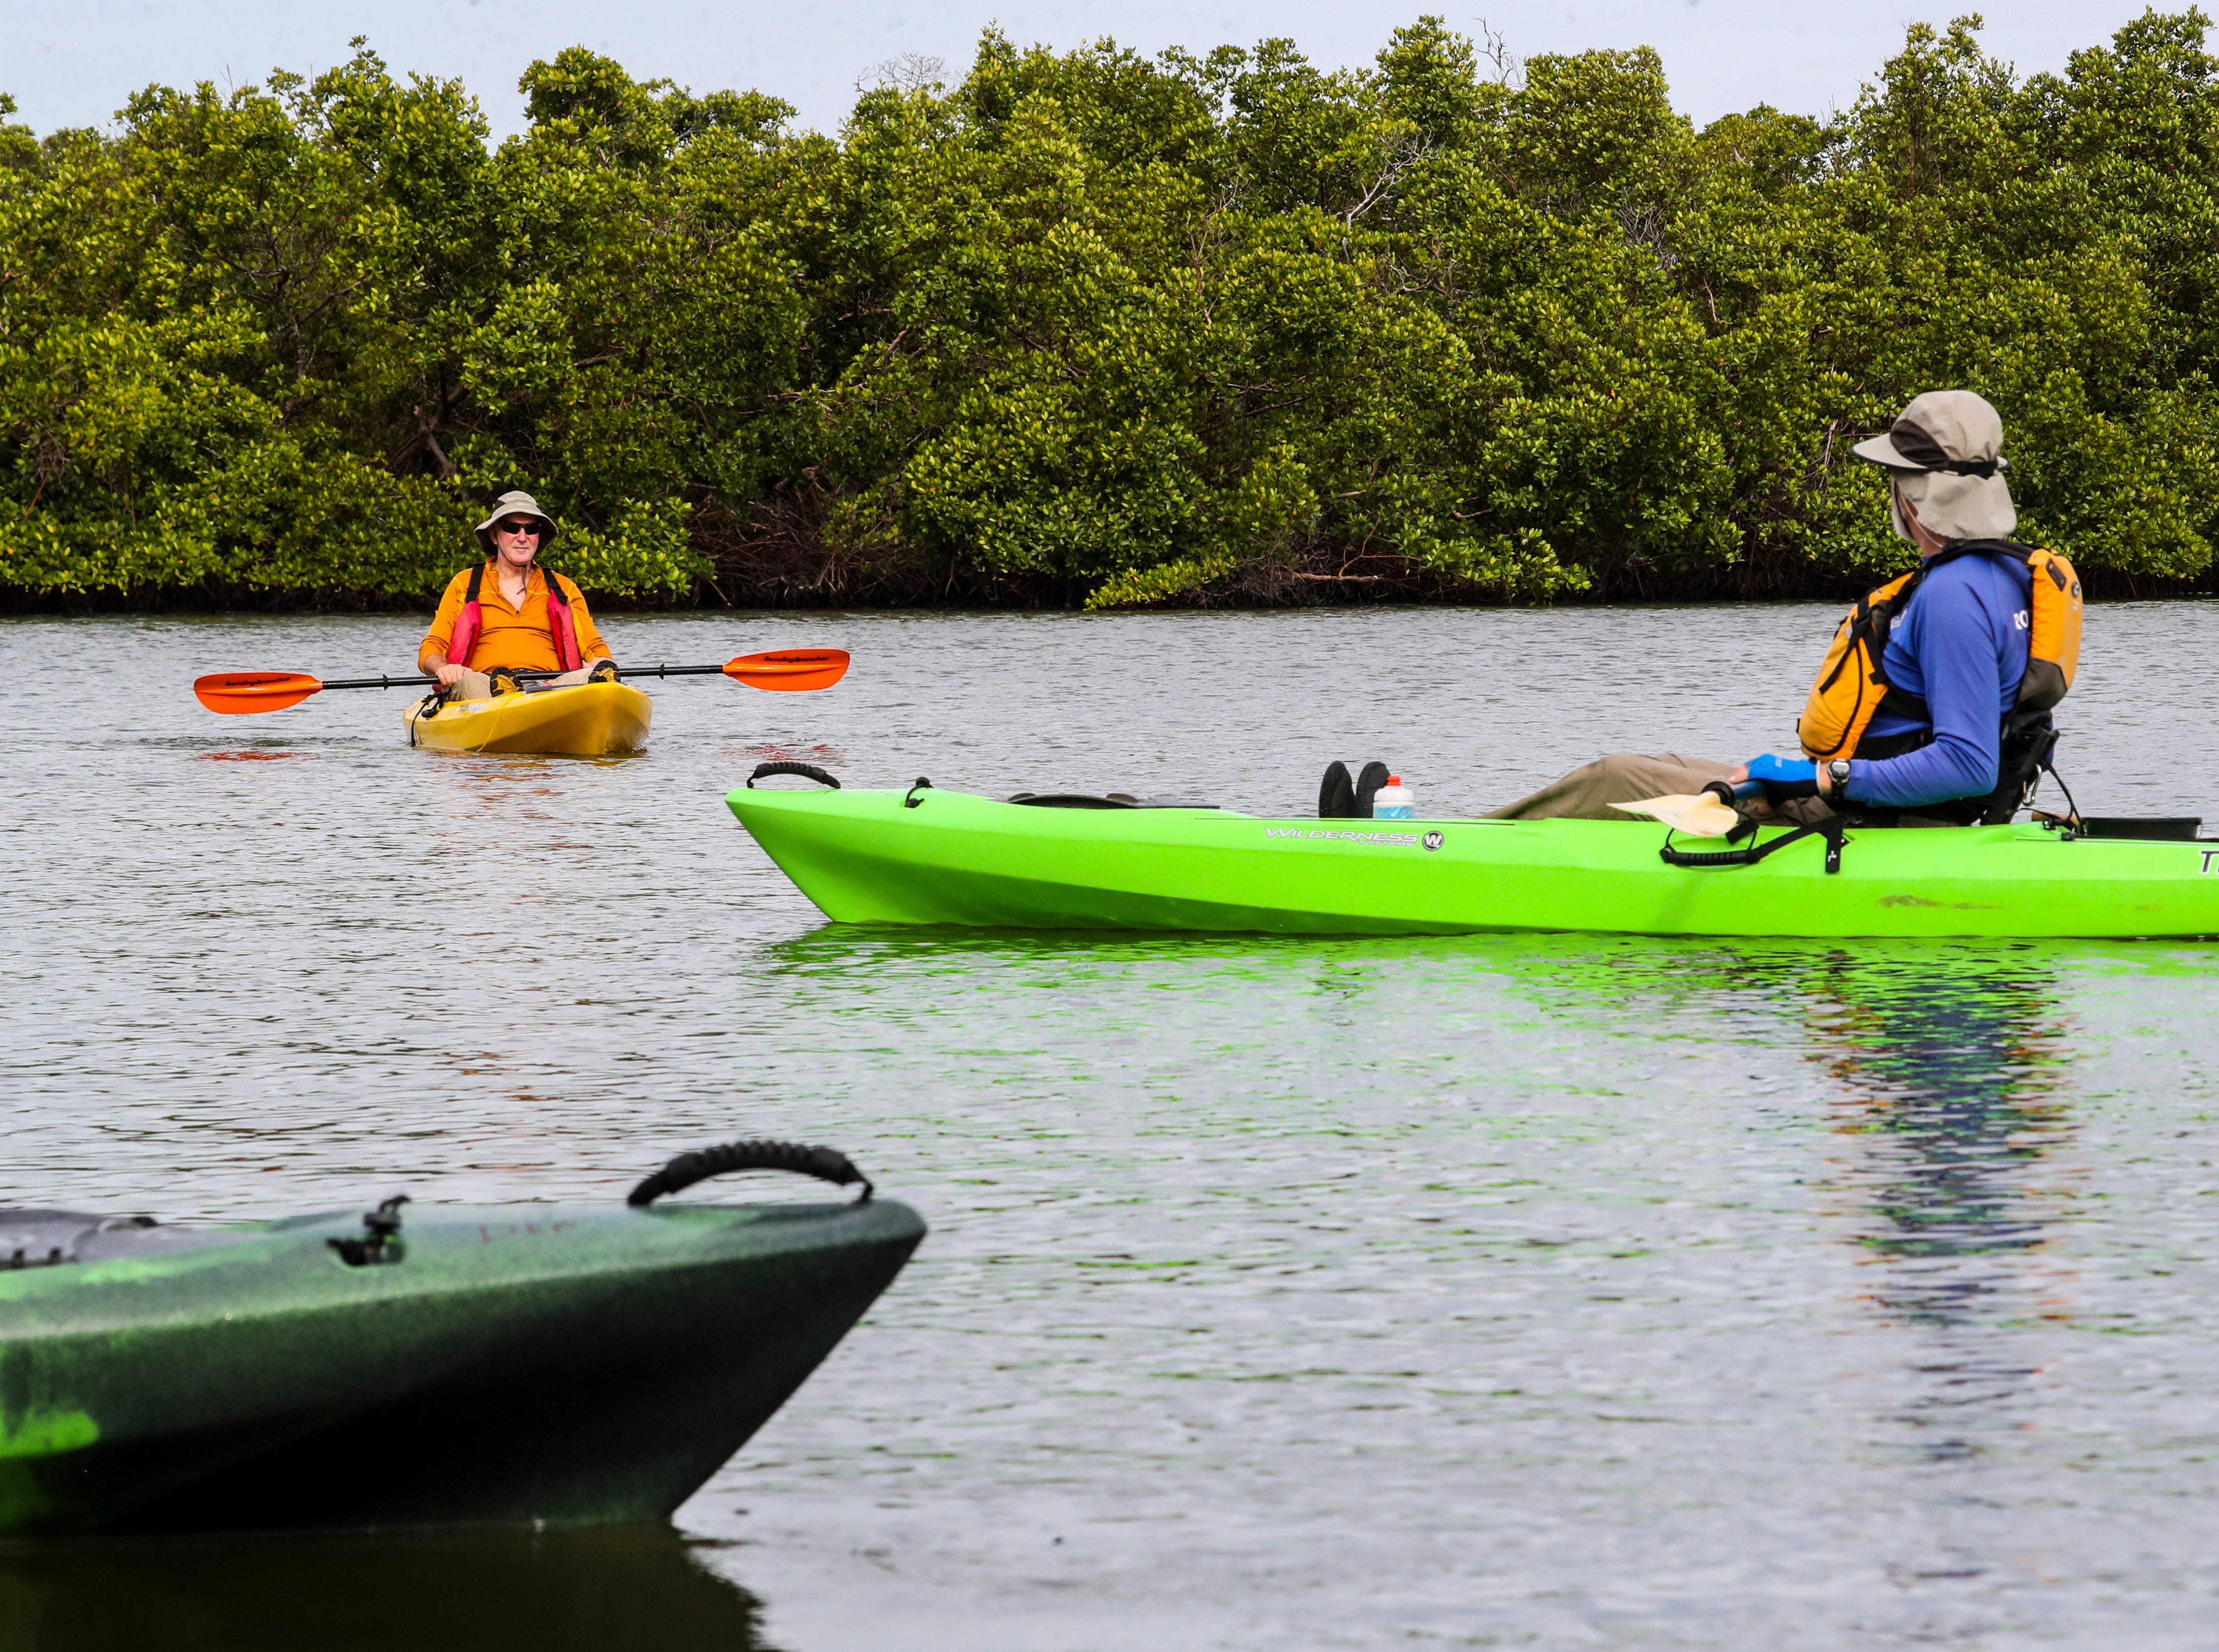 (right)Randy McCormick, captain and guide, talks to Martin Strasmore, of Naples, as they float on the water. Rookery Bay National Estuarine Research Reserve in Naples offers a two-hour guided kayak tour of Rookery Bay. This tour provides an up-close and personal experience of this irreplaceable national treasure. Paddle through the shallows and maze like mangrove tunnels while learning about  surroundings from an experienced guide and naturalist. Randy McCormick, captain and guide, has worked at the Reserve for many years and knows the area intimately. He is a Certified Interpretive Guide, an instructor in the Florida Master Naturalist program and a fifth generation Floridian.